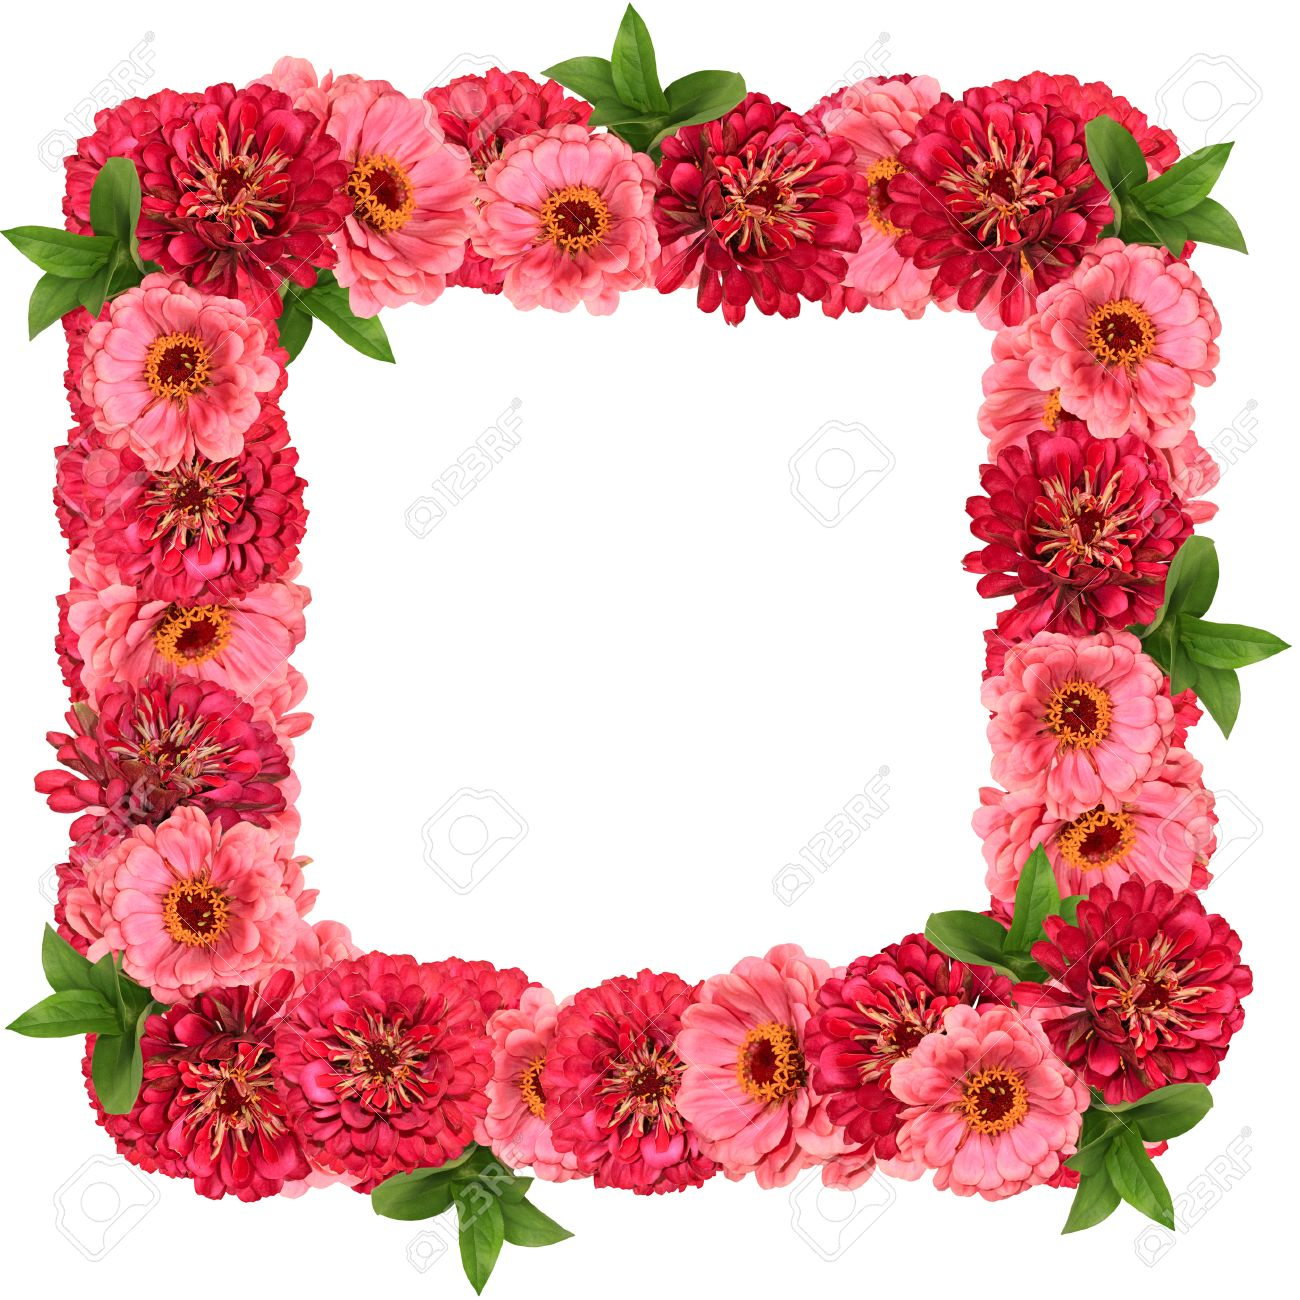 Square Frame With Red And Pink Flowers Isolated On White Background